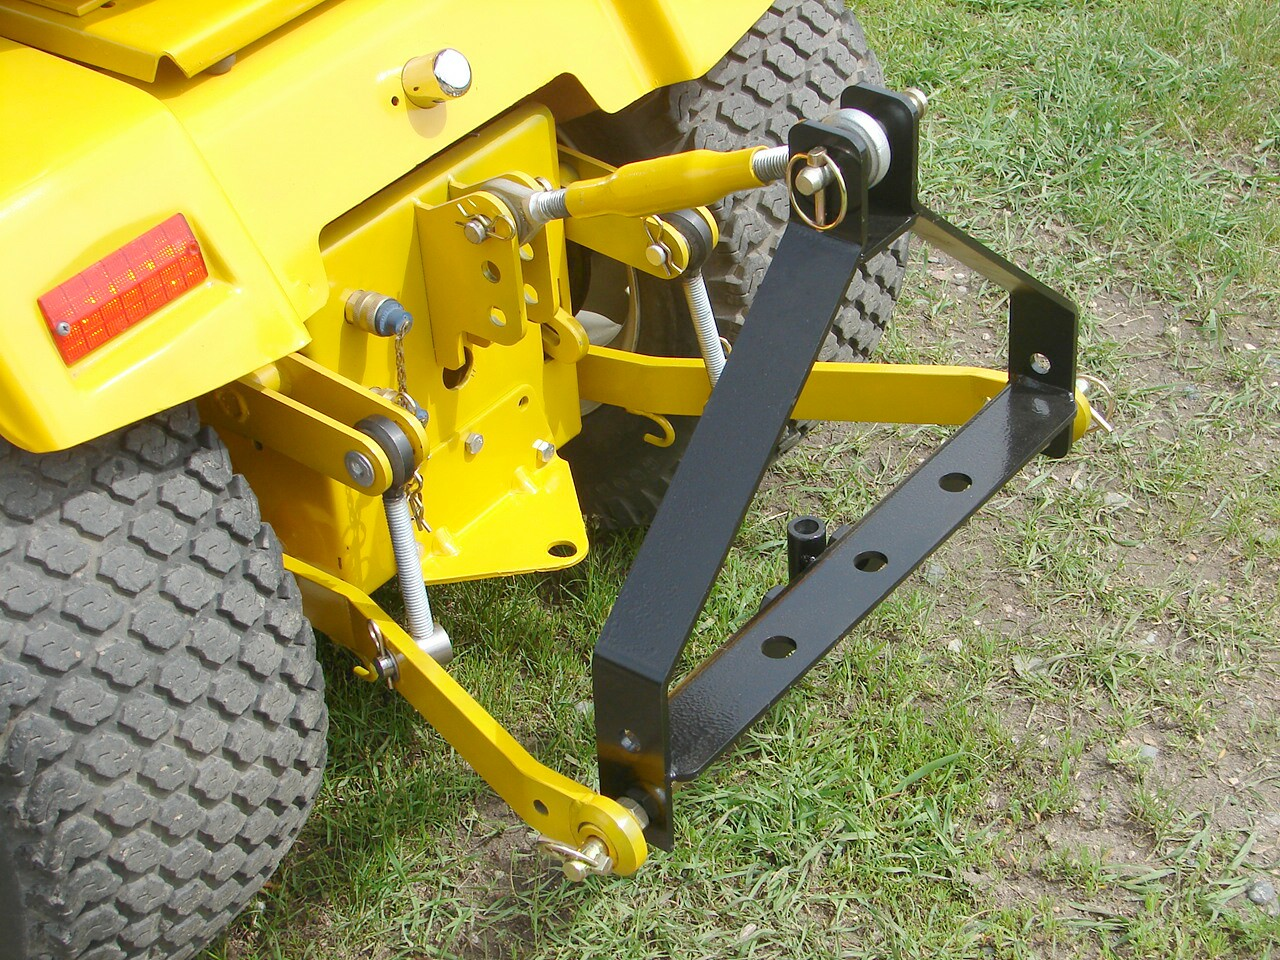 Cub Cadet Lawn Tractor Deck Diagram Wire Data Schema 1440 Electric Wiring International Harvester Ih 3 Points Sleeve Hitch Electrical Mower